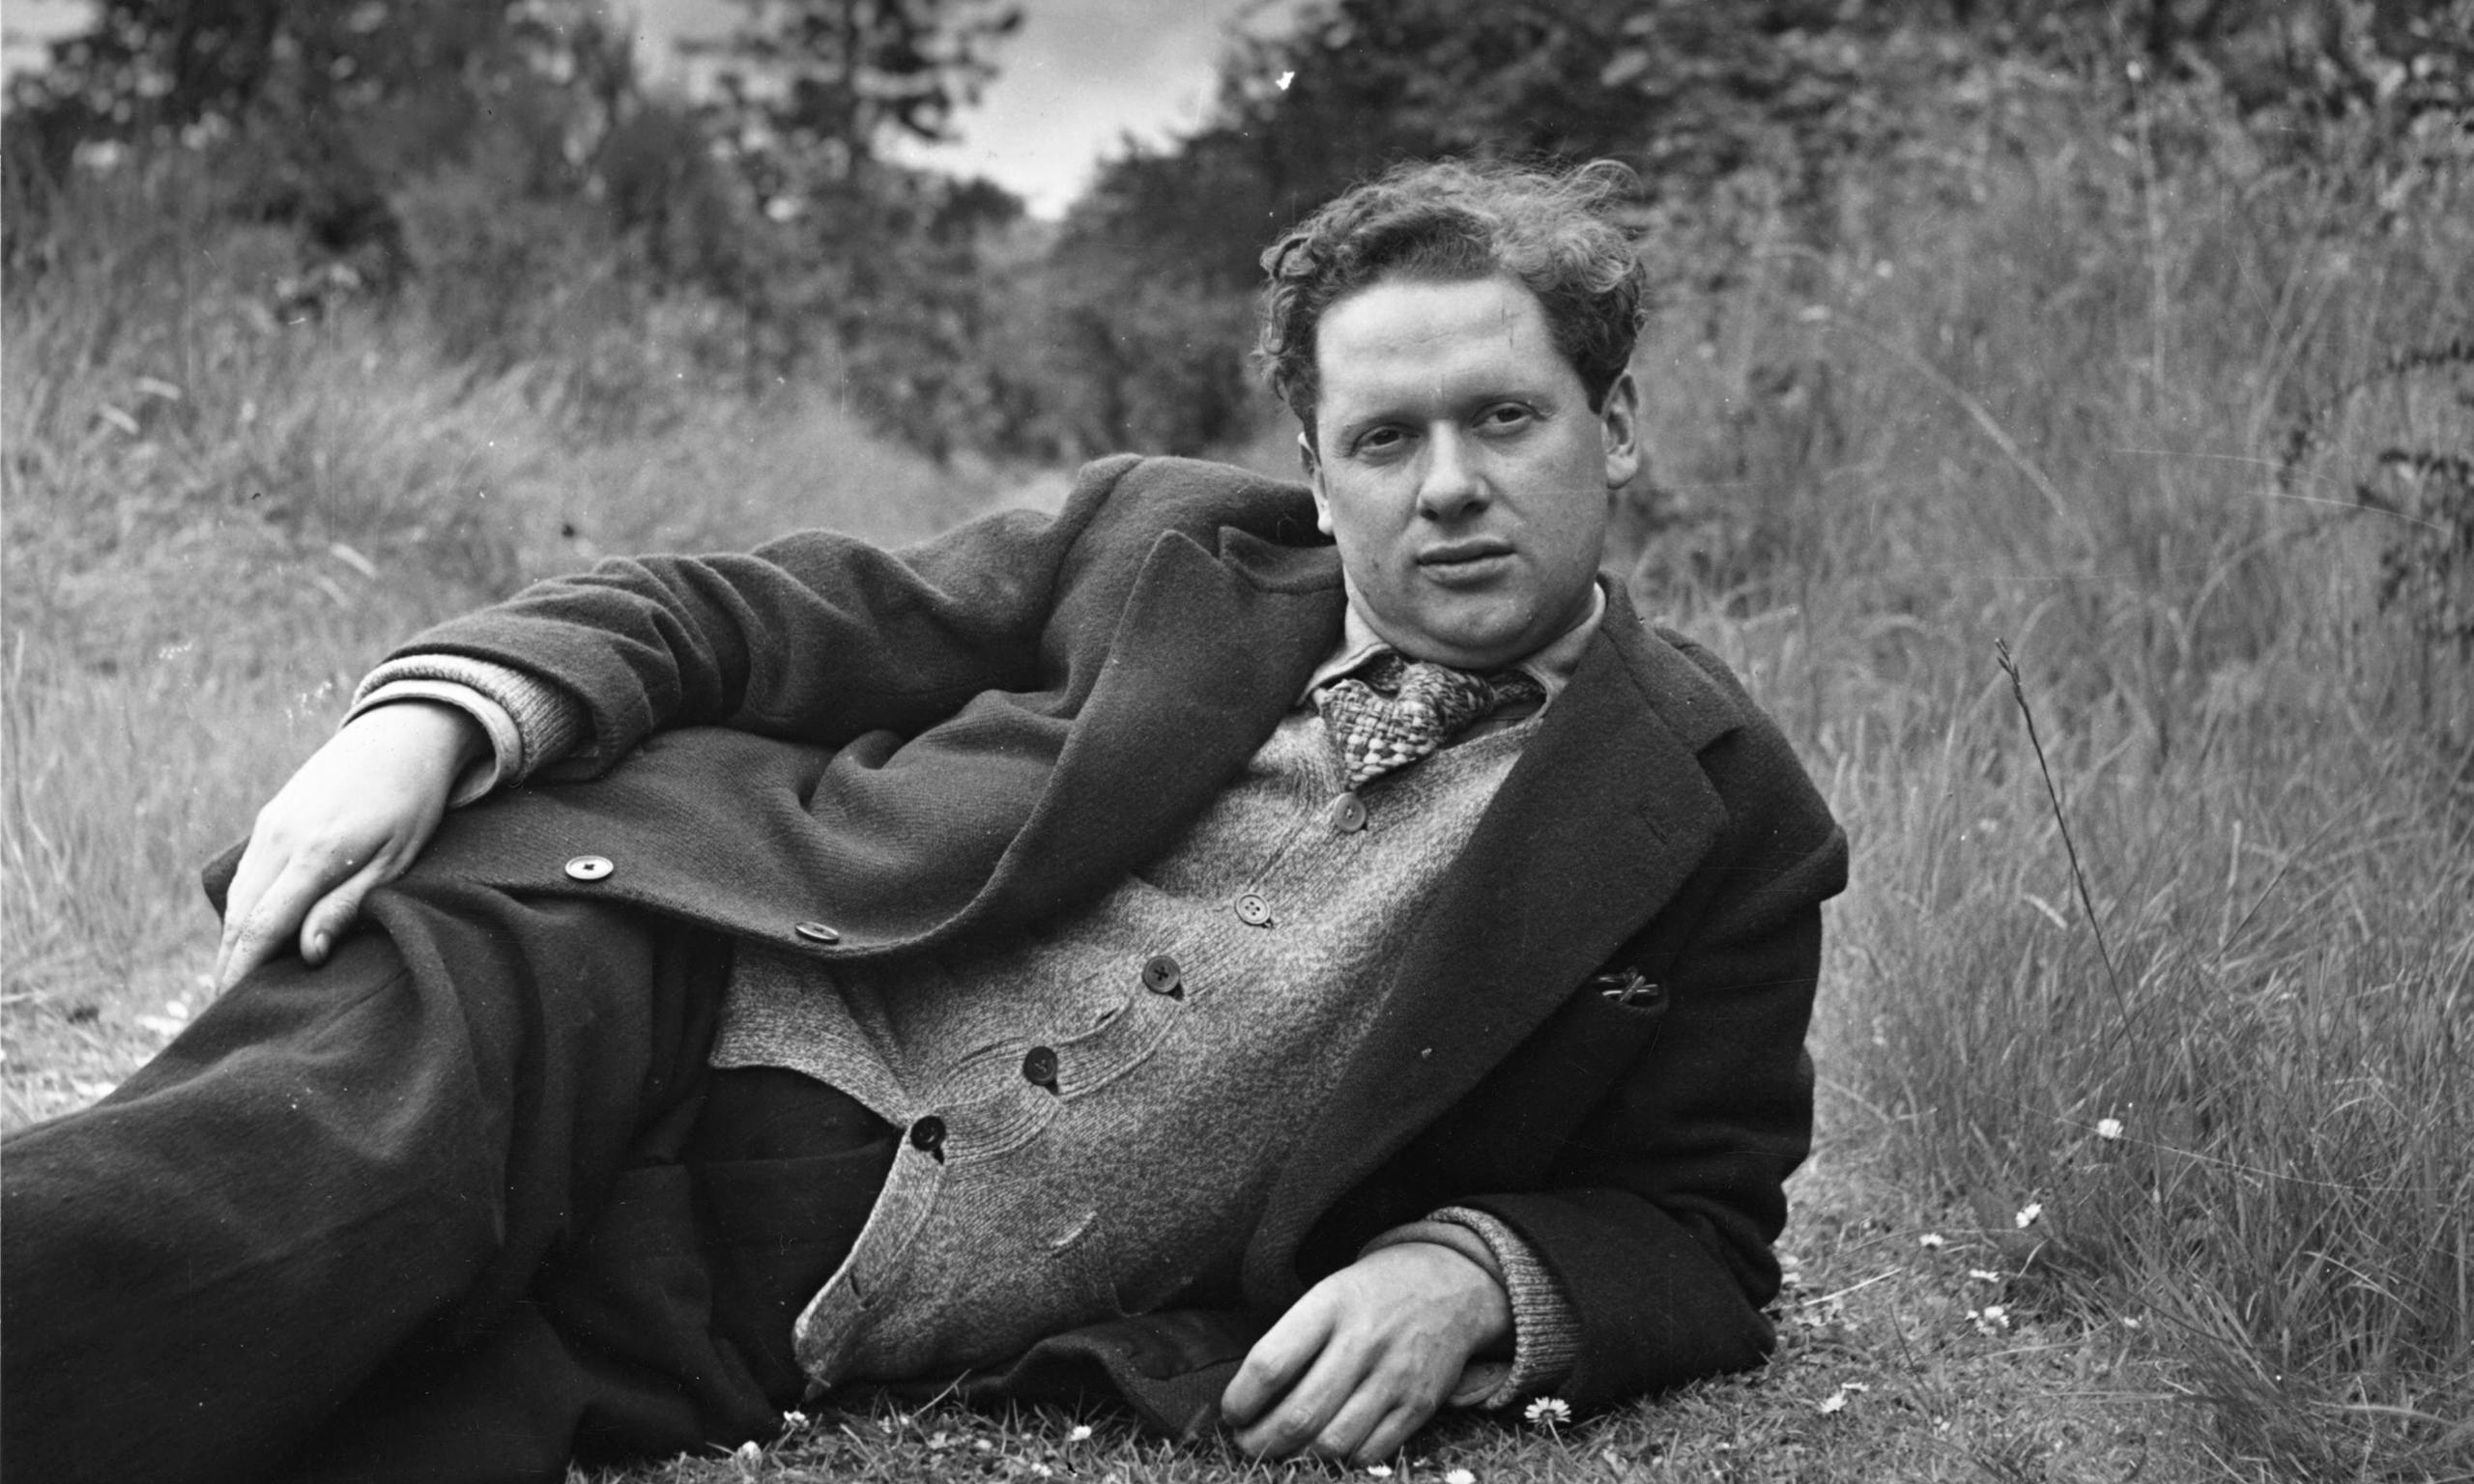 A photograph of the poet Dylan Thomas reclining in a meadow